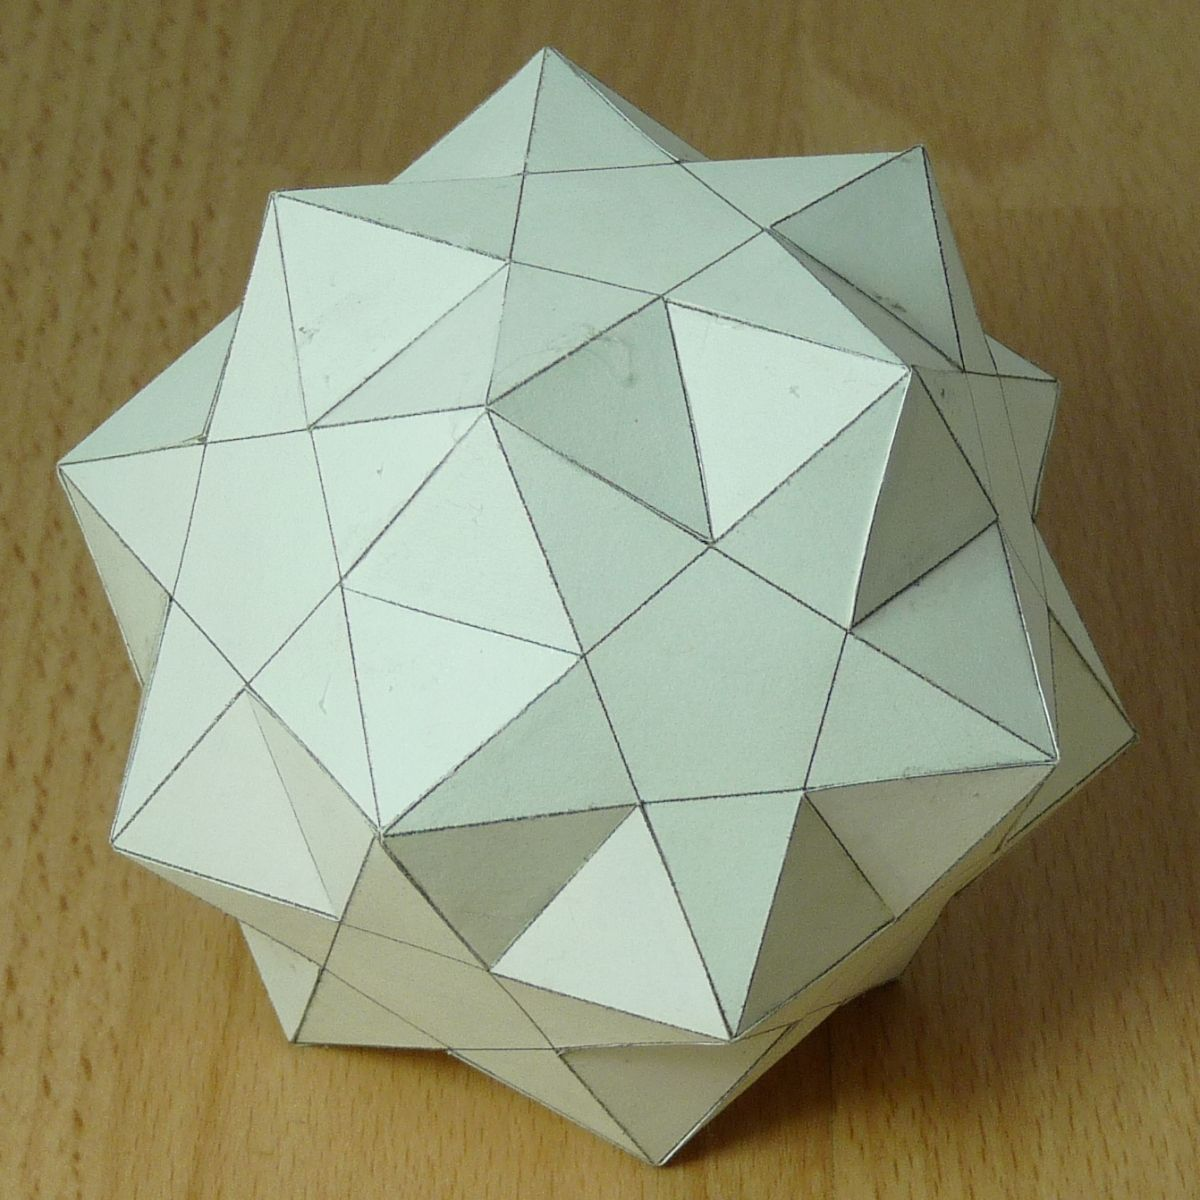 small ditrigonal icosidodecahedron from compendium of Paper Models of Polyhedra site #paper #ornaments #robots